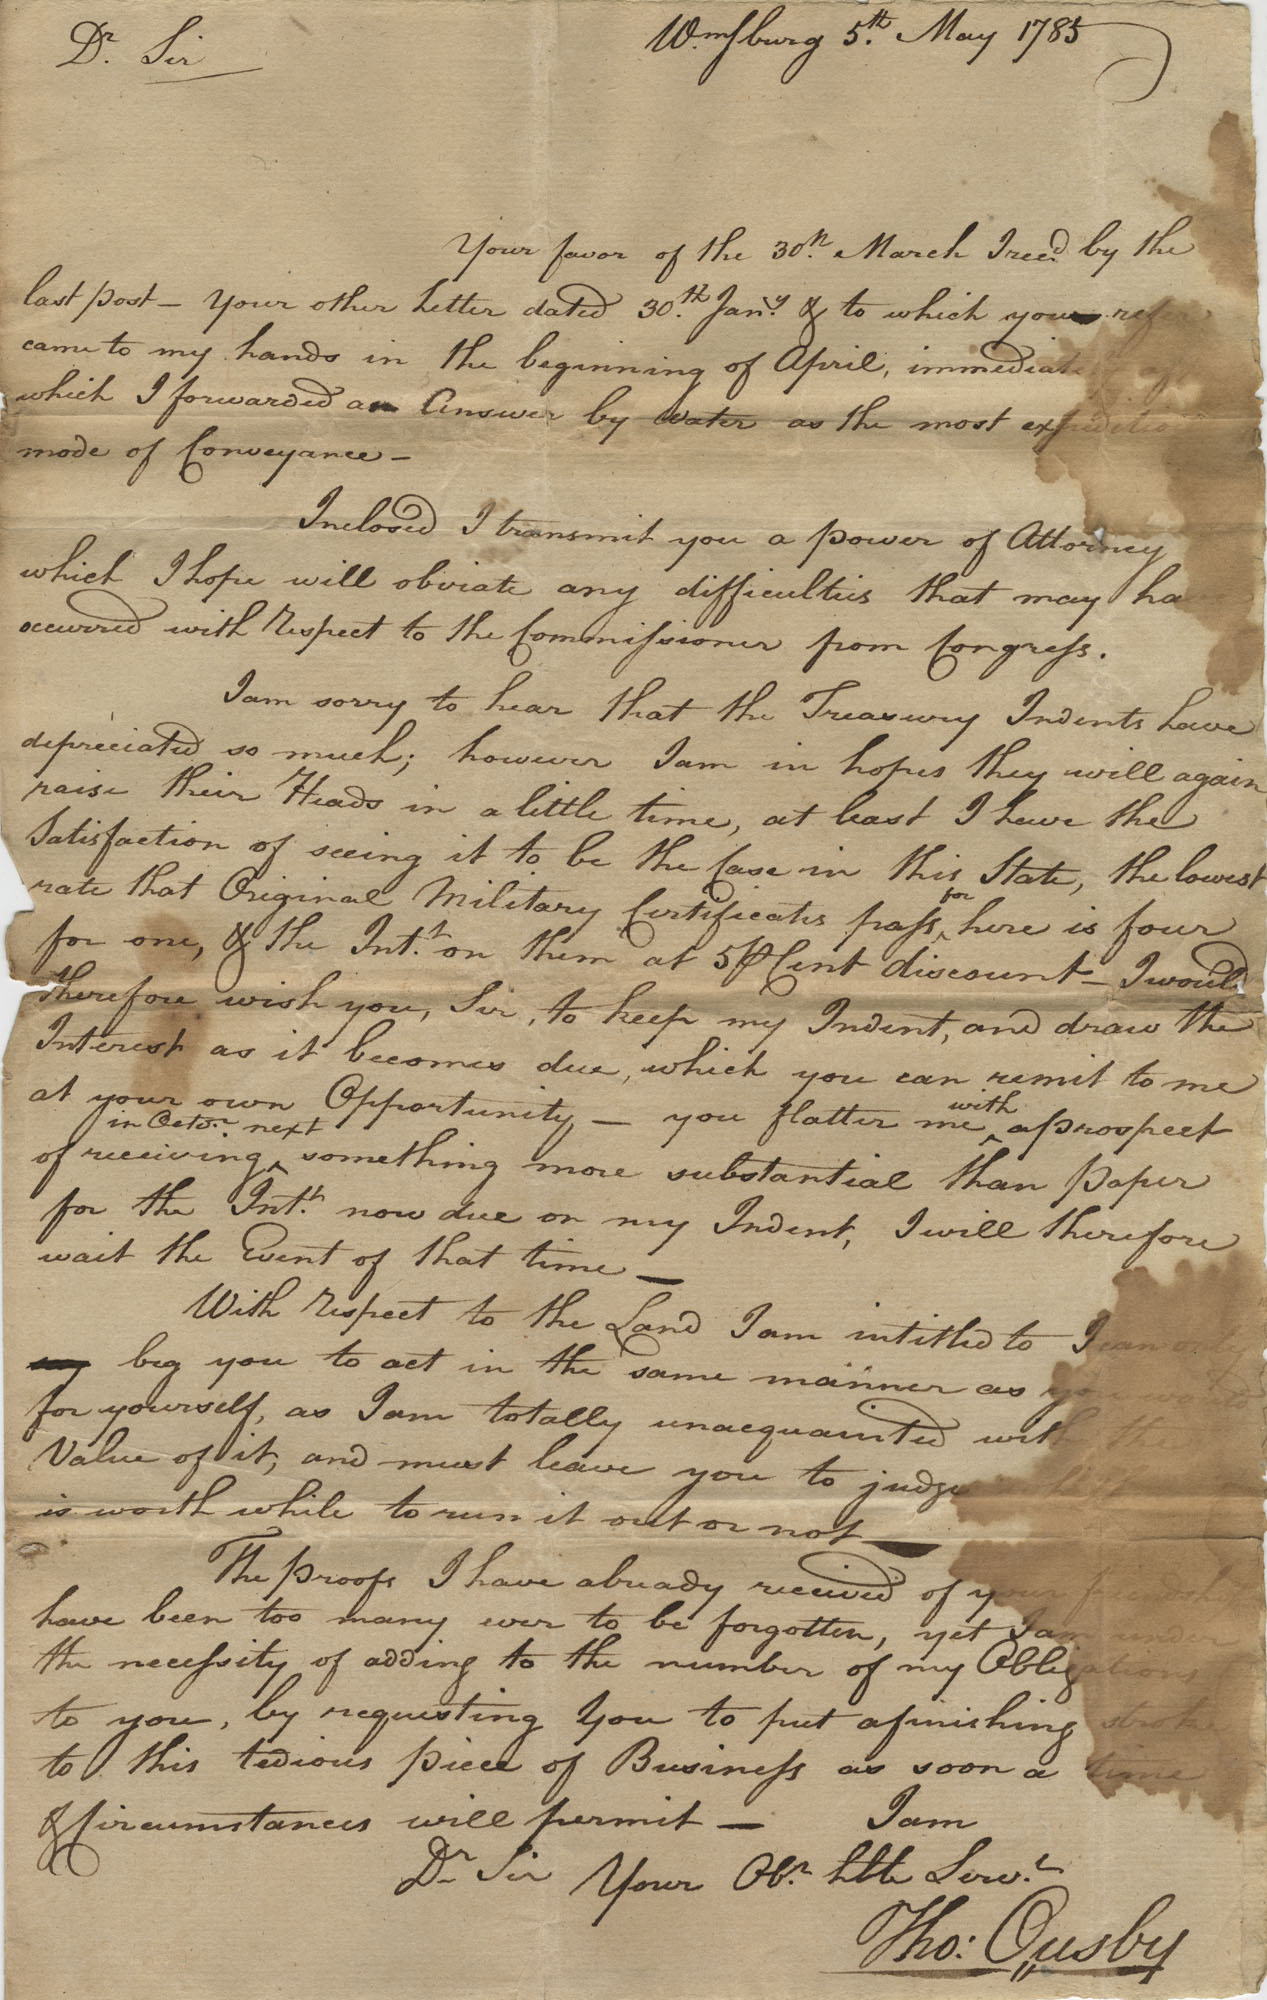 Letter to John F. Grimke from Thomas Ousby, May 5, 1785